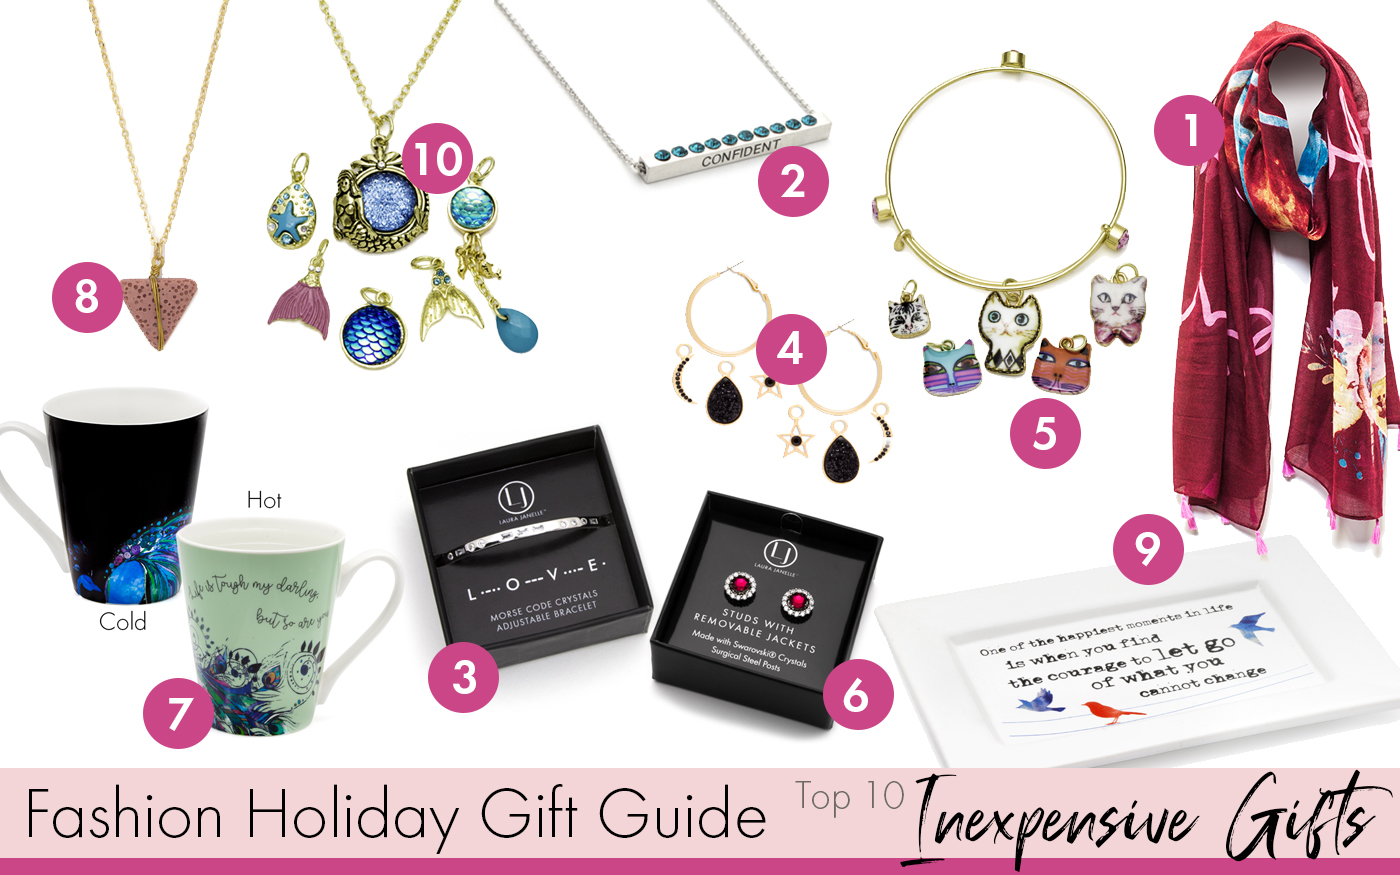 Fashion Holiday Gift Guide – Top 10 Inexpensive Gifts